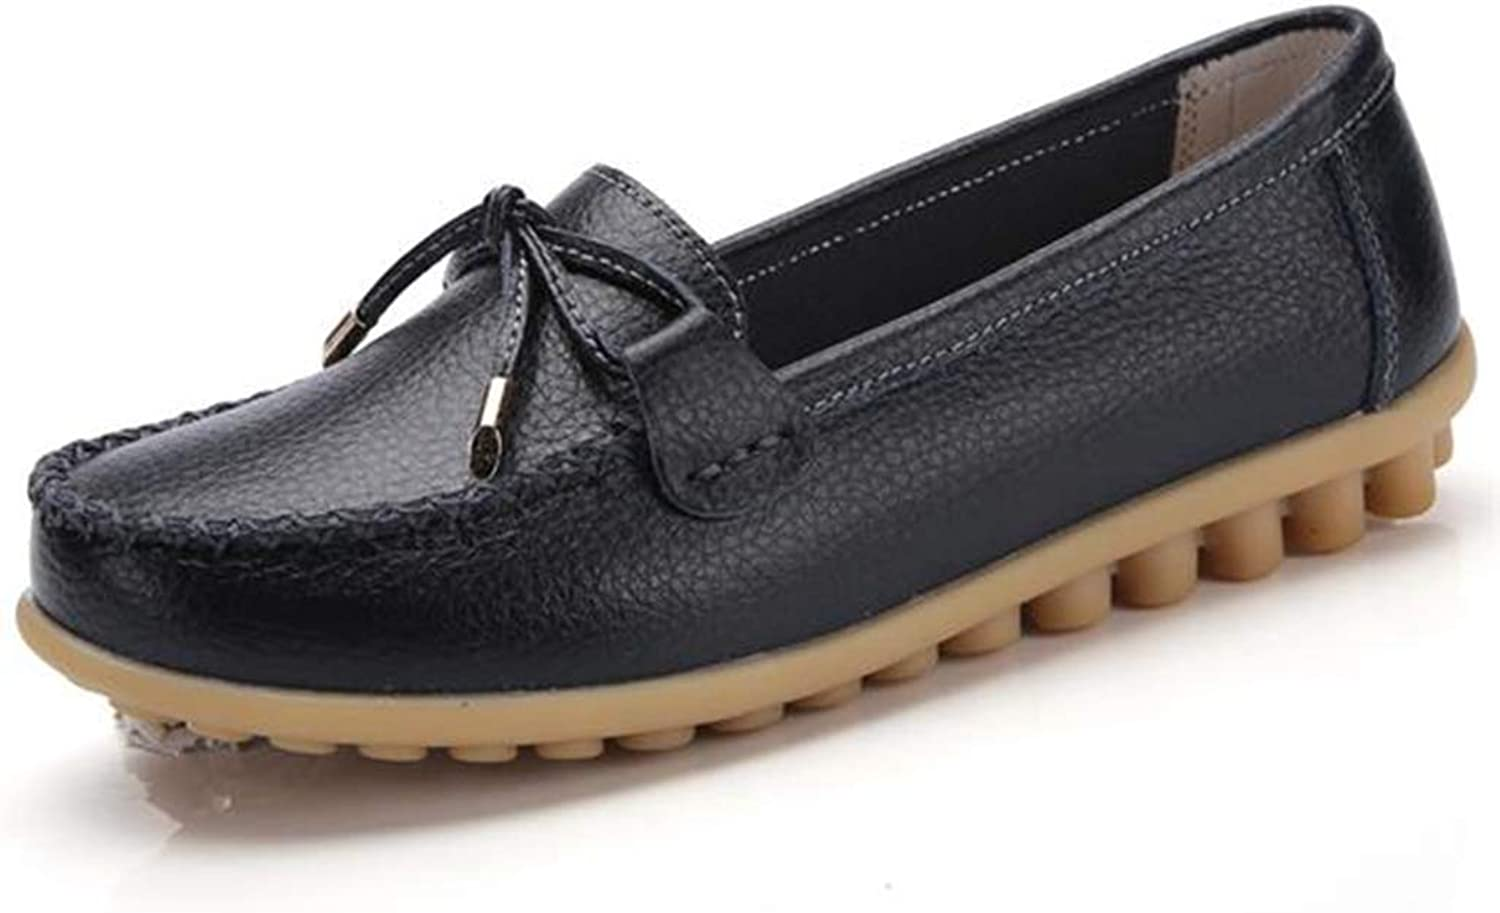 Women's Leather Loafers Fashion Moccasins Casual Comfy Plus Walking Flat Loafer